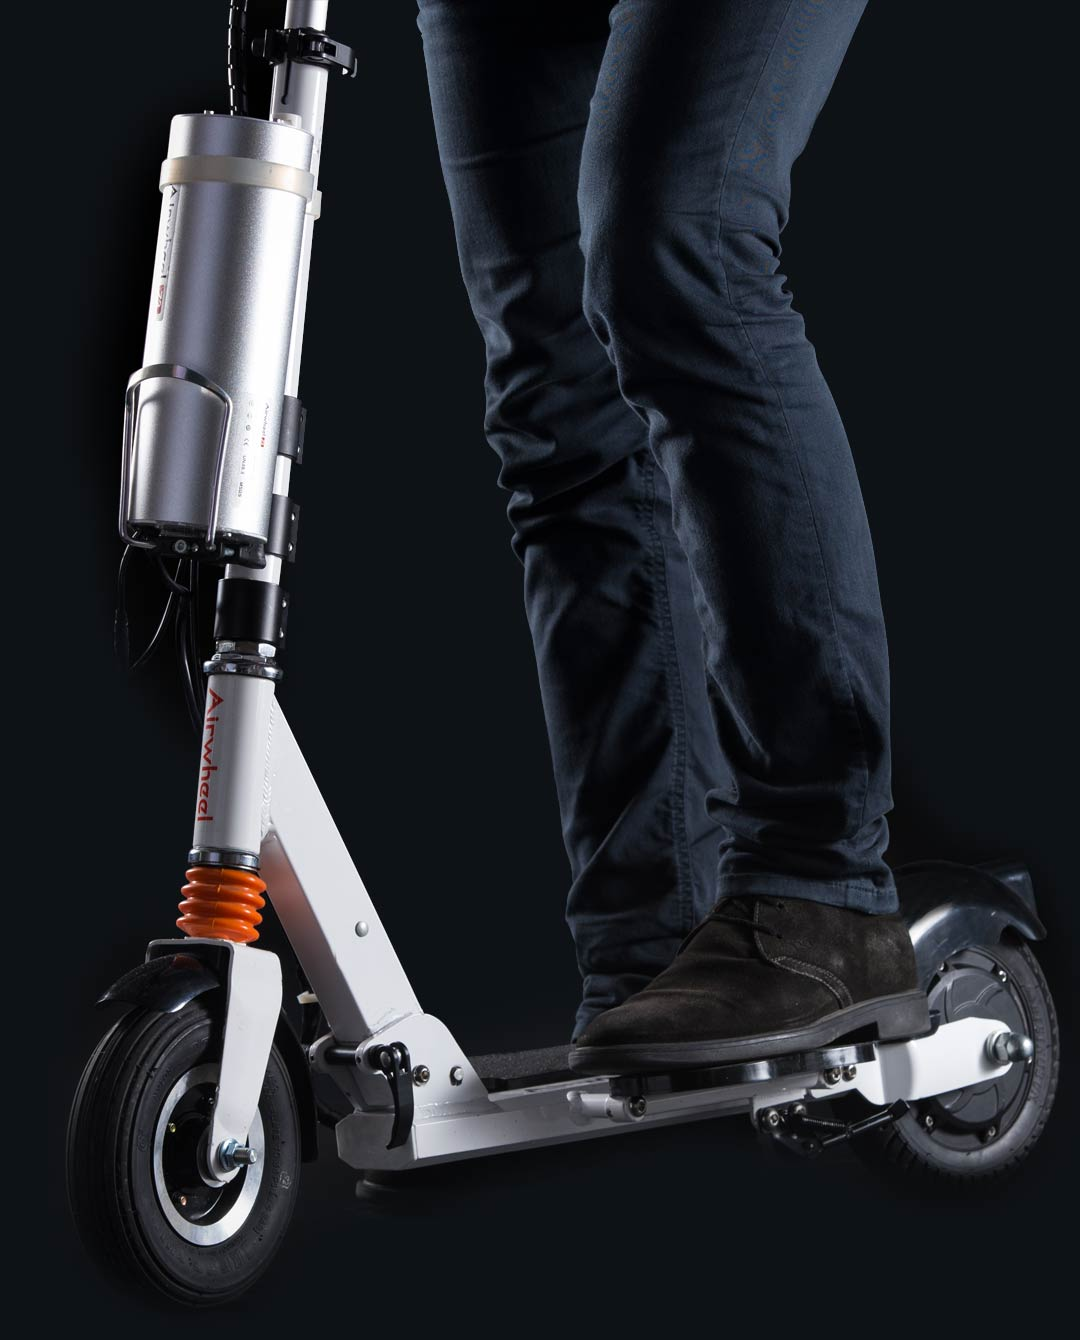 Airwheel Z3 dark backround